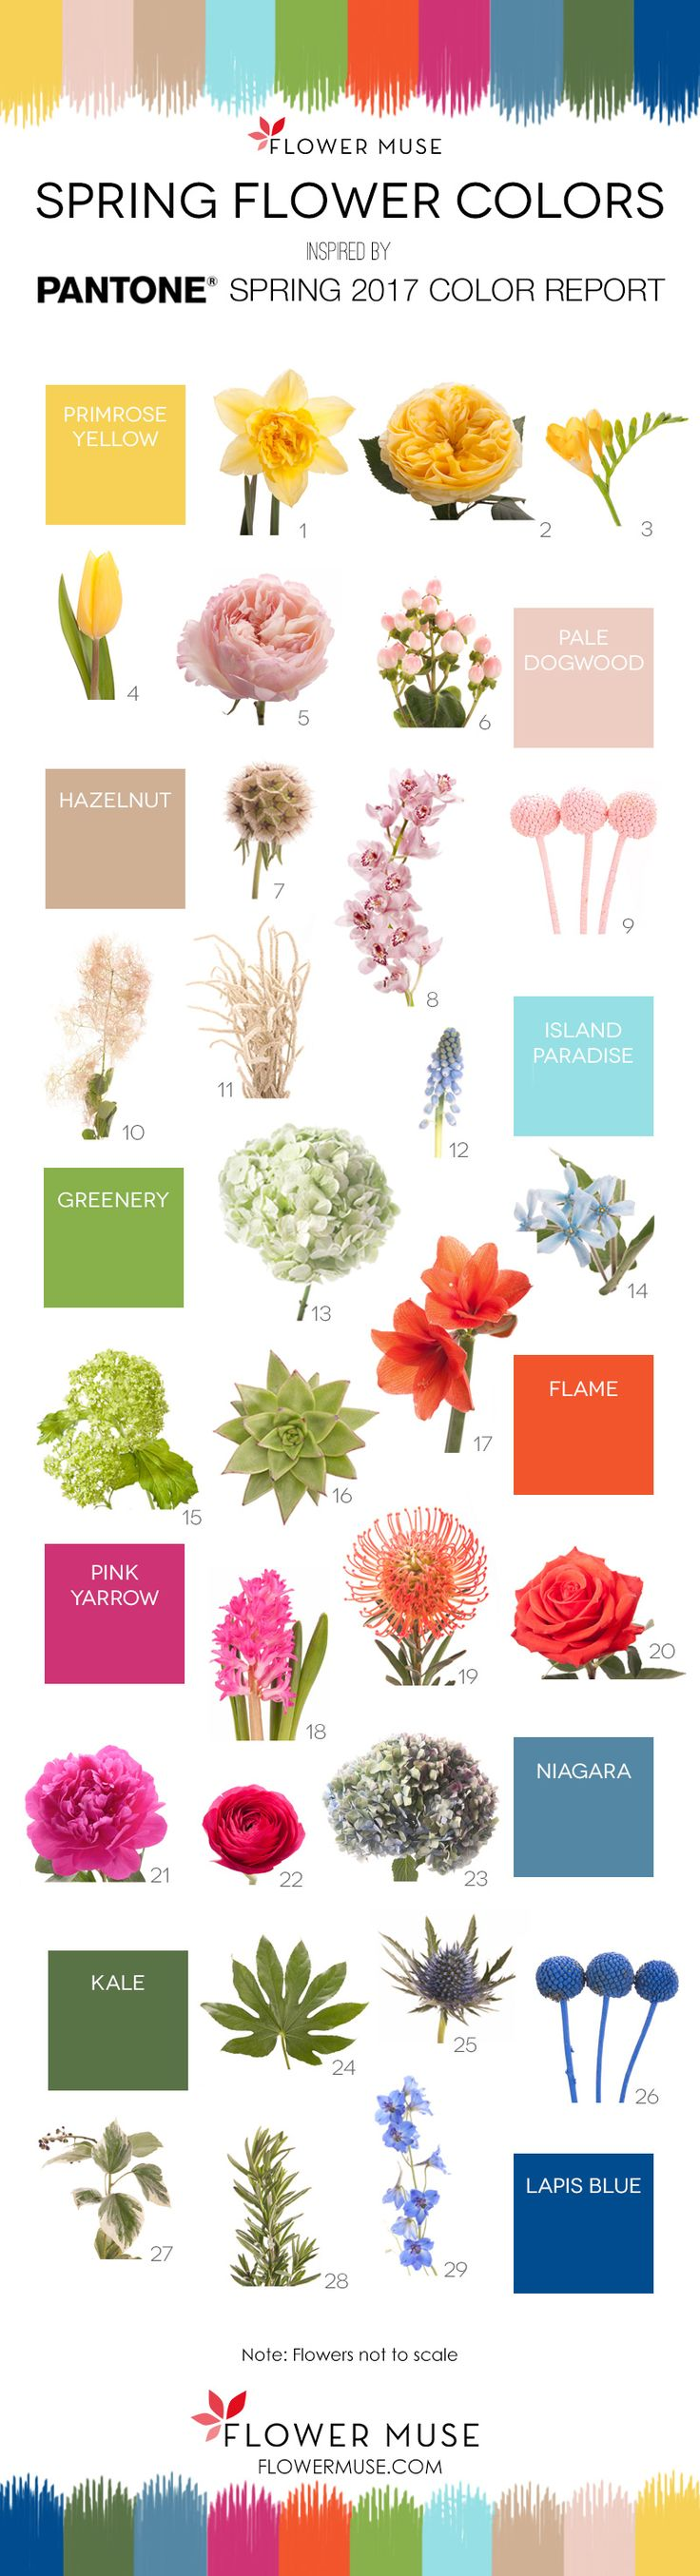 Spring Flowers as inspired by Pantone's 2017 Spring Color Report on Flower Muse blog